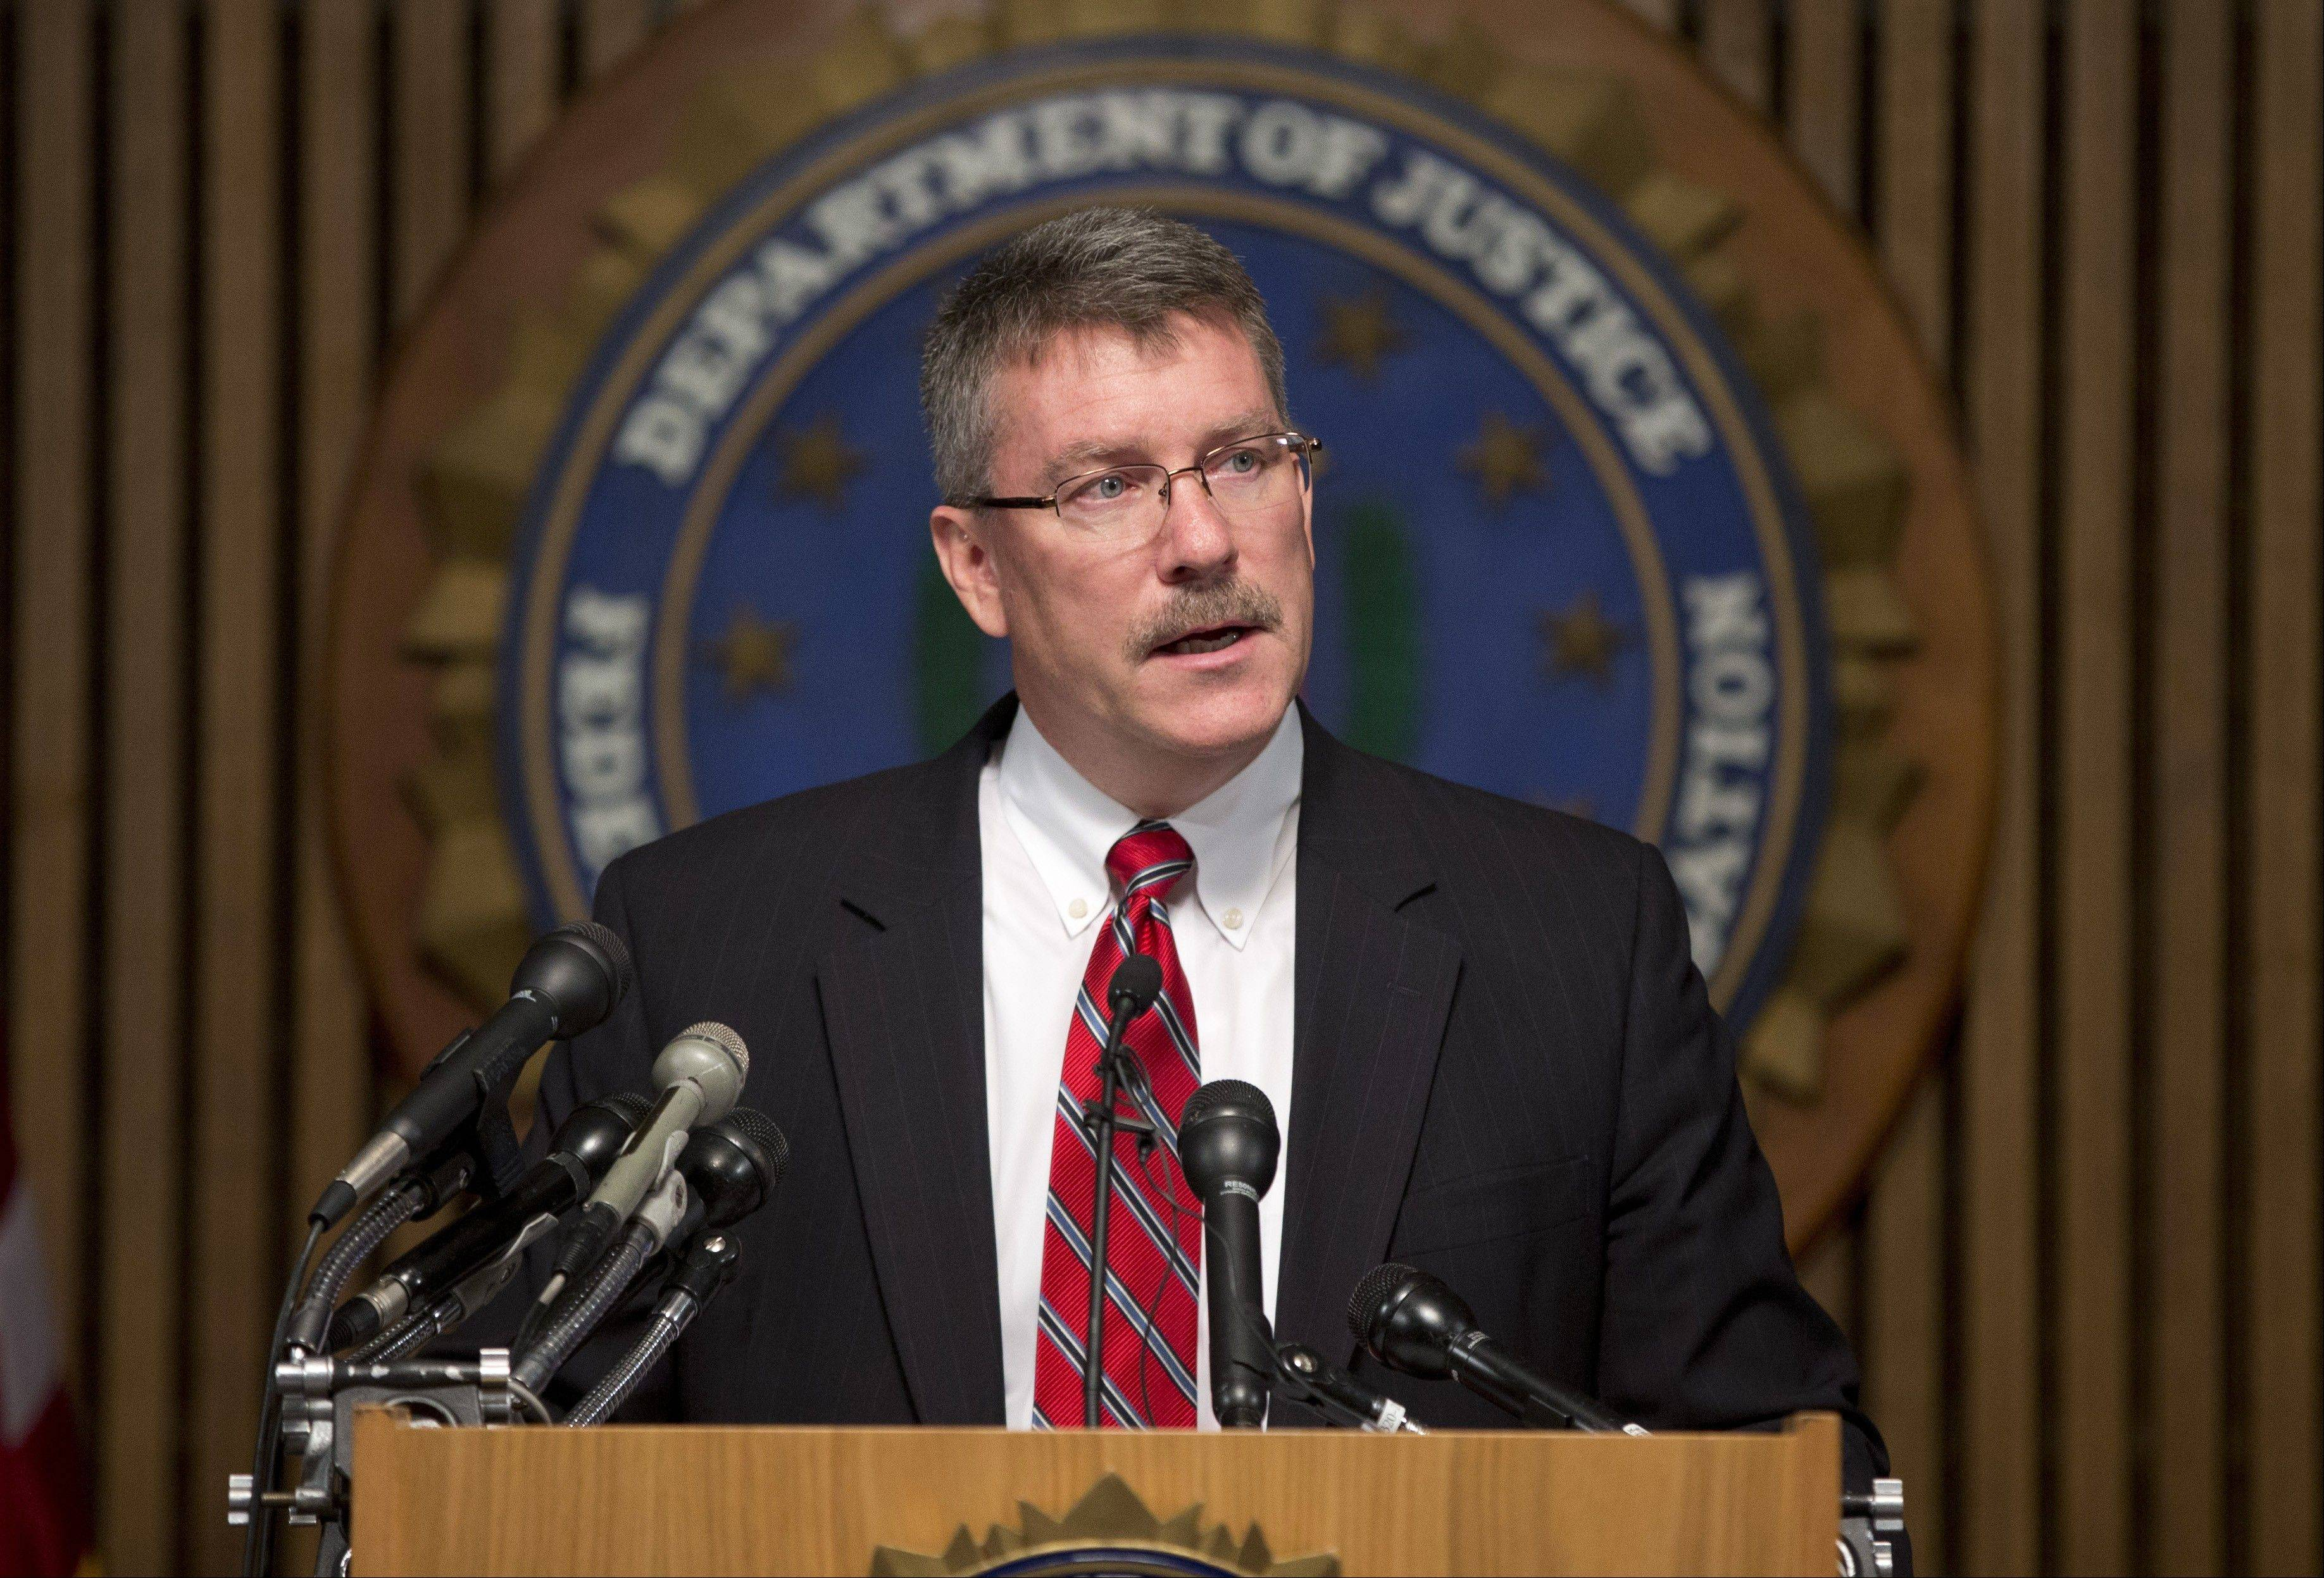 Ron Hosko, assistant director of the FBI's Criminal Investigative Division, speaks about Operation Cross Country during a news conference Monday at FBI headquarters in Washington, D.C. The FBI says the operation was conducted in 76 cities across the country, including Chicago.